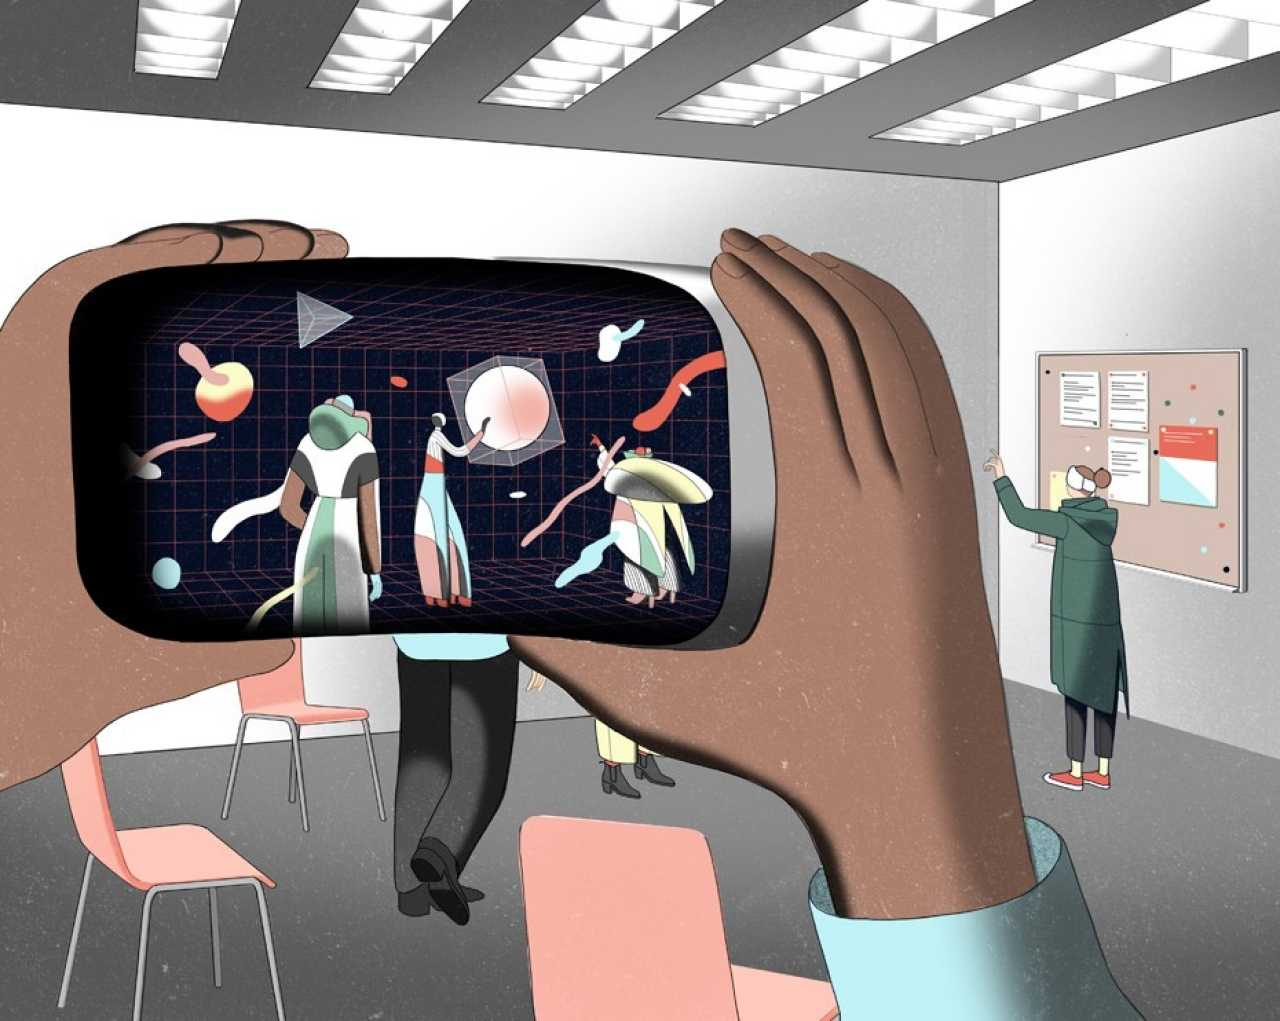 The 'Holodeck' Propels NYU to the Future | Washington Square News